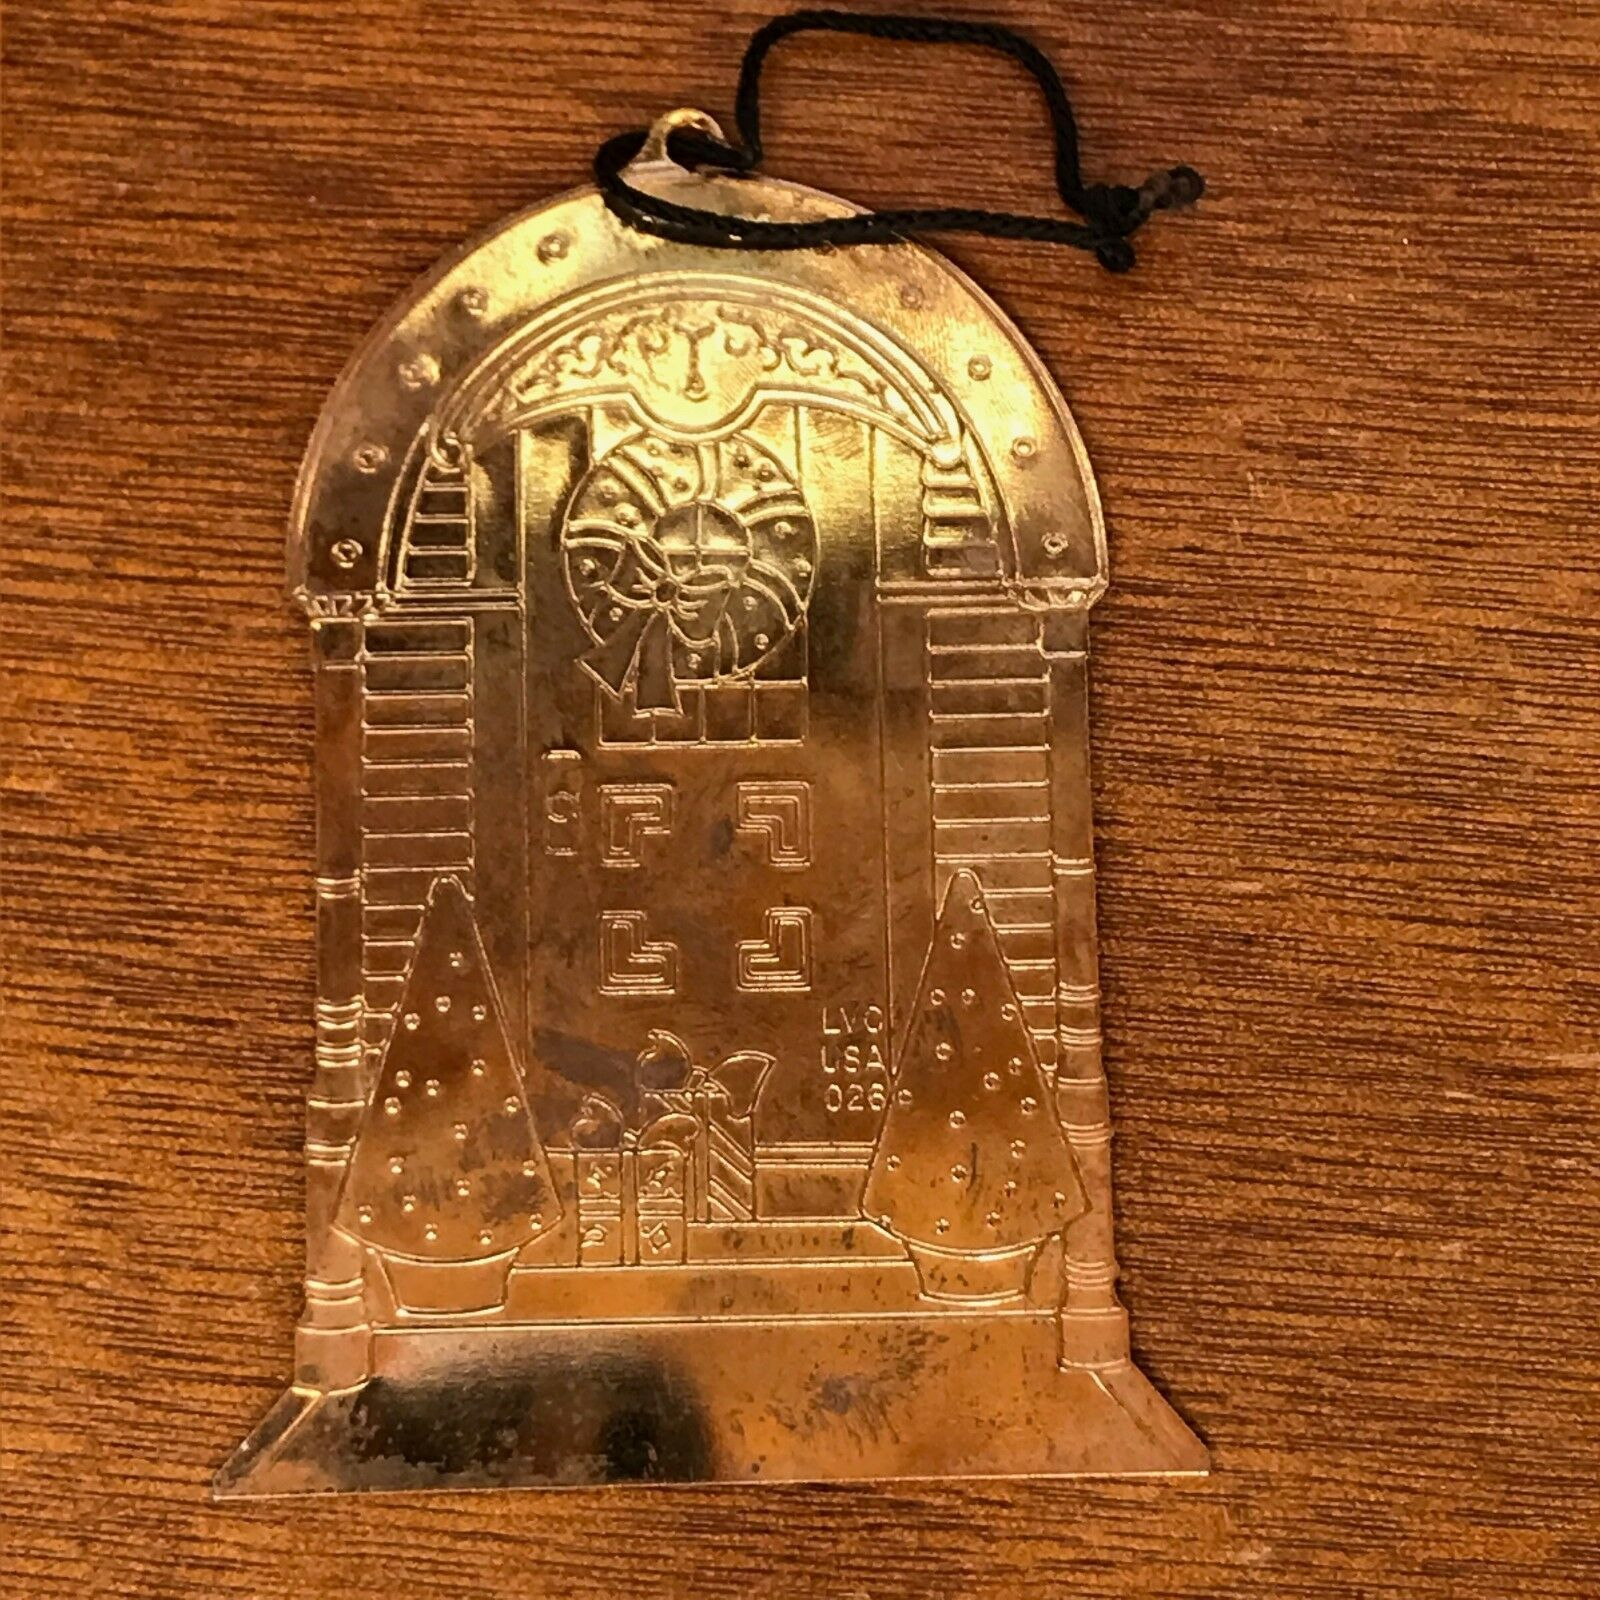 Solid Brass Enamel Doorway with Christmas Trees Packages & Wreath FOSTER CARE Ch